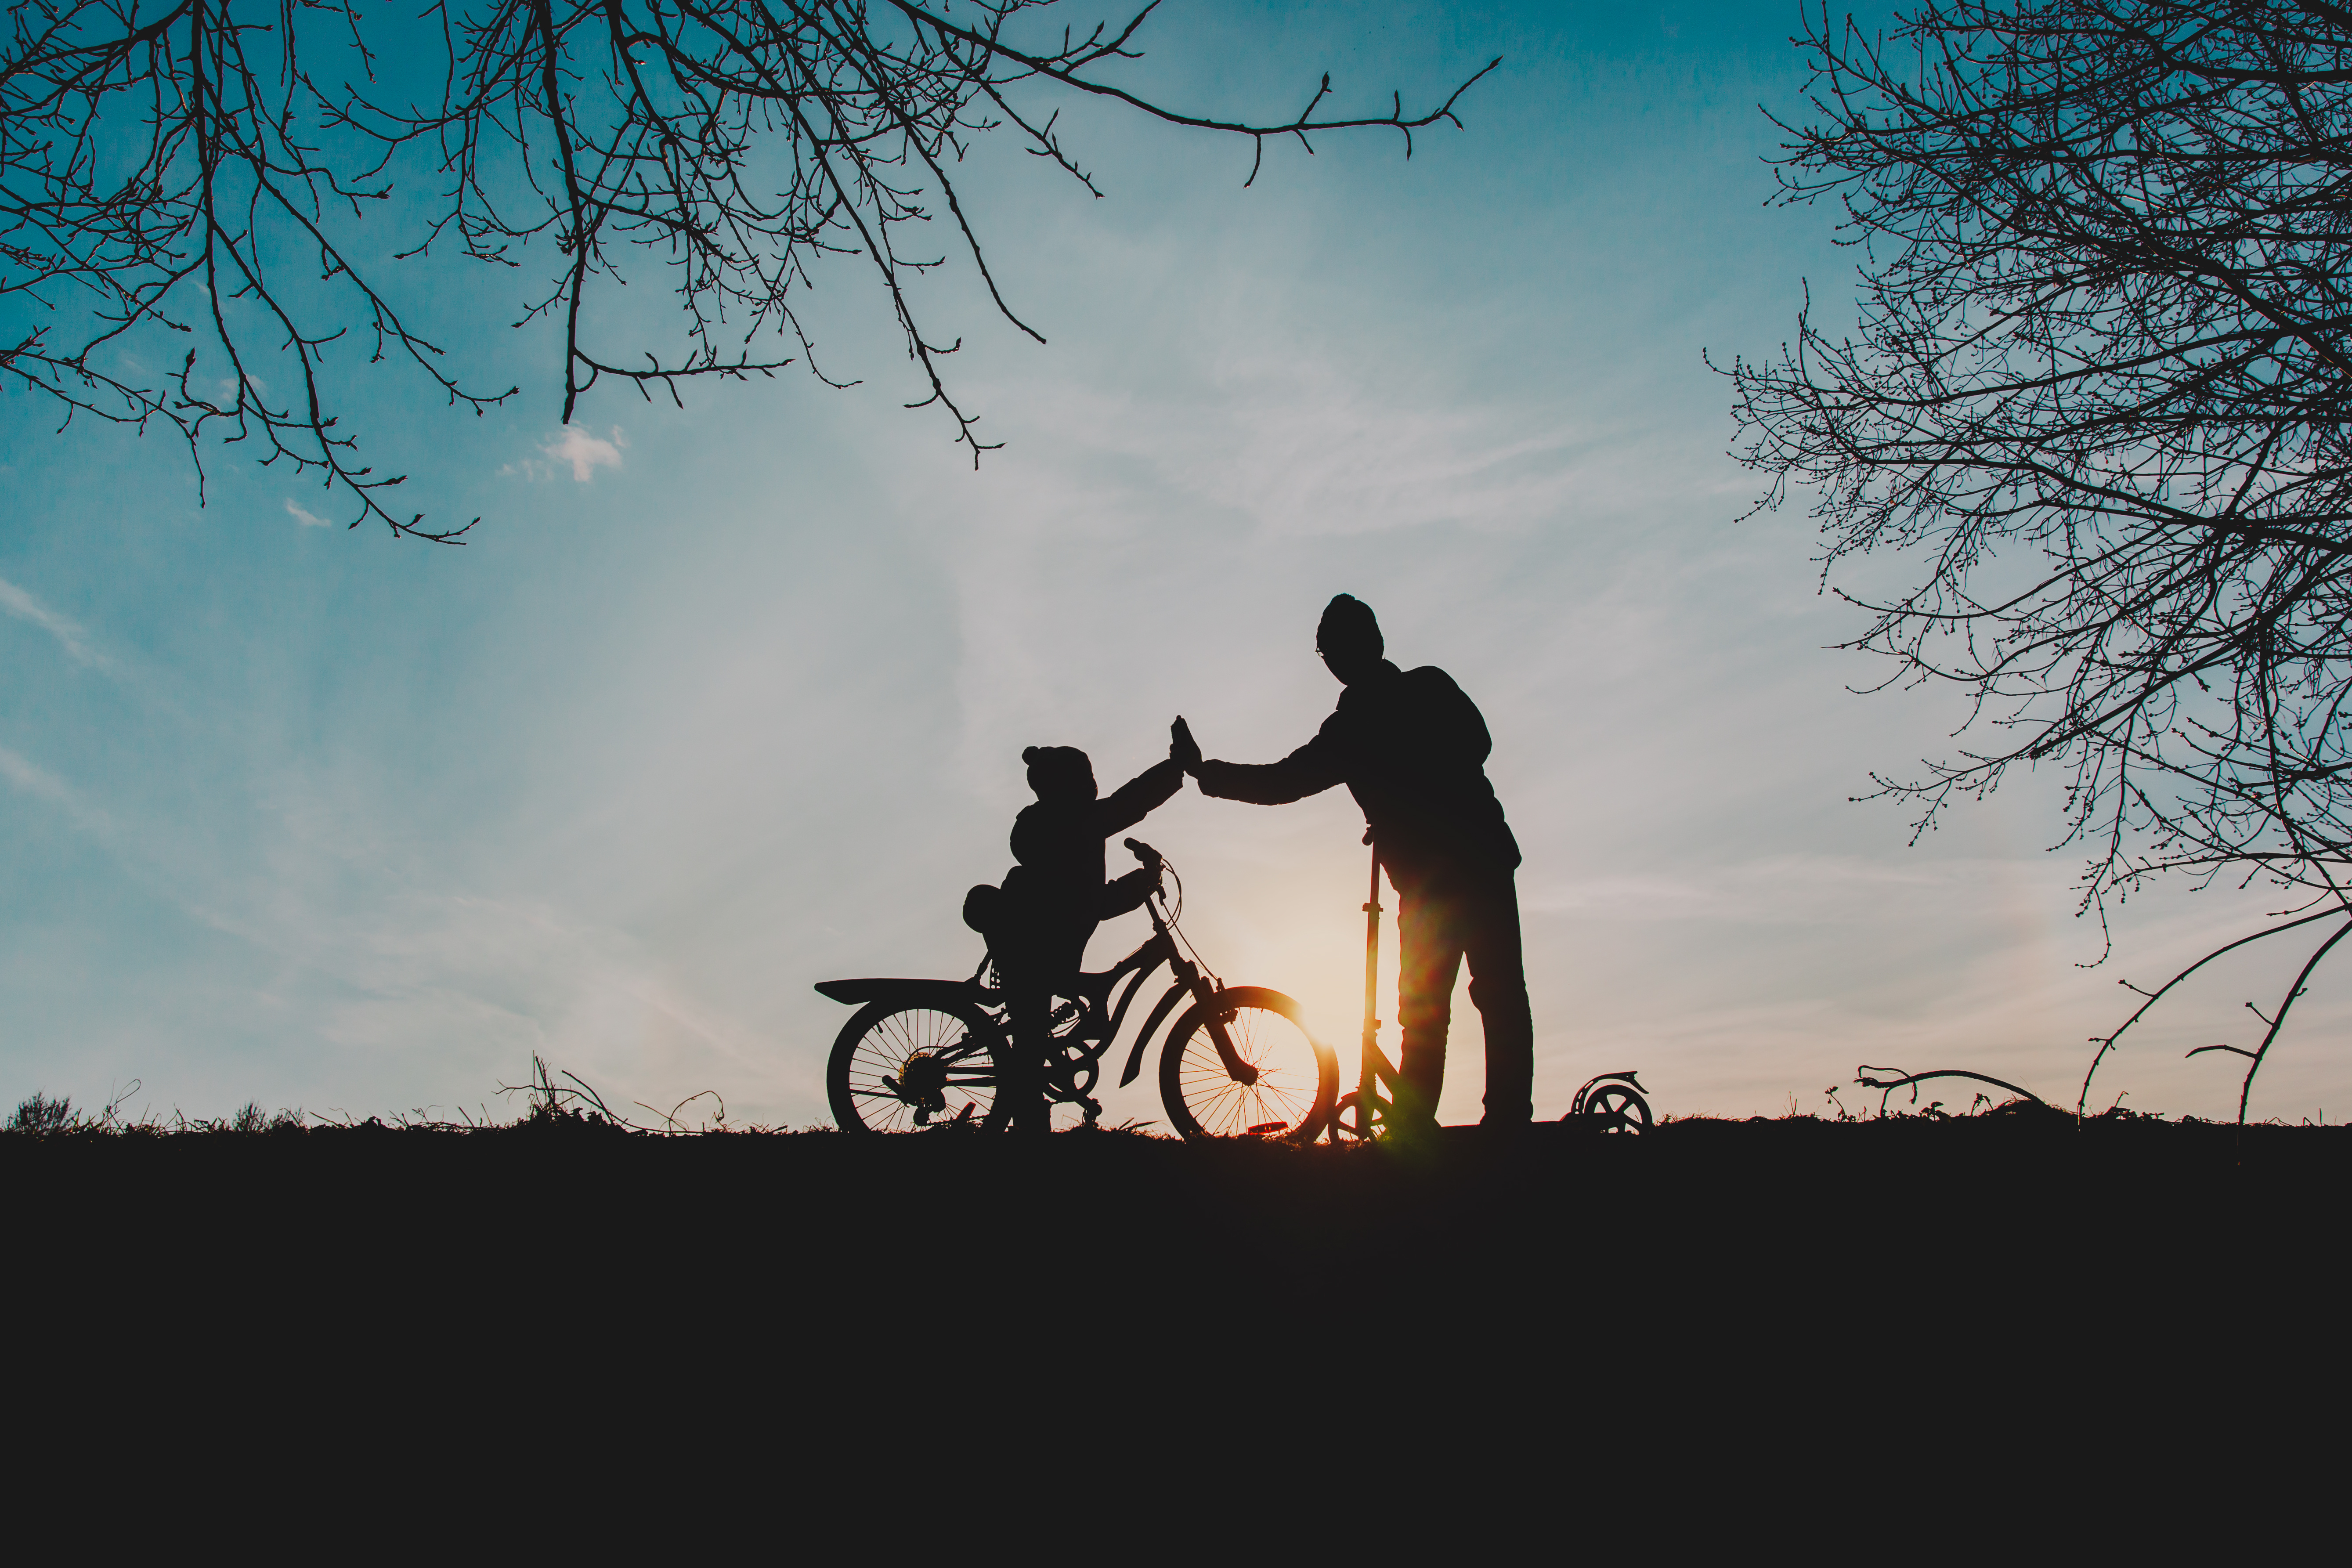 silhouette_of_happy_father_and_son_riding_bike_and_scooter_at_sunset